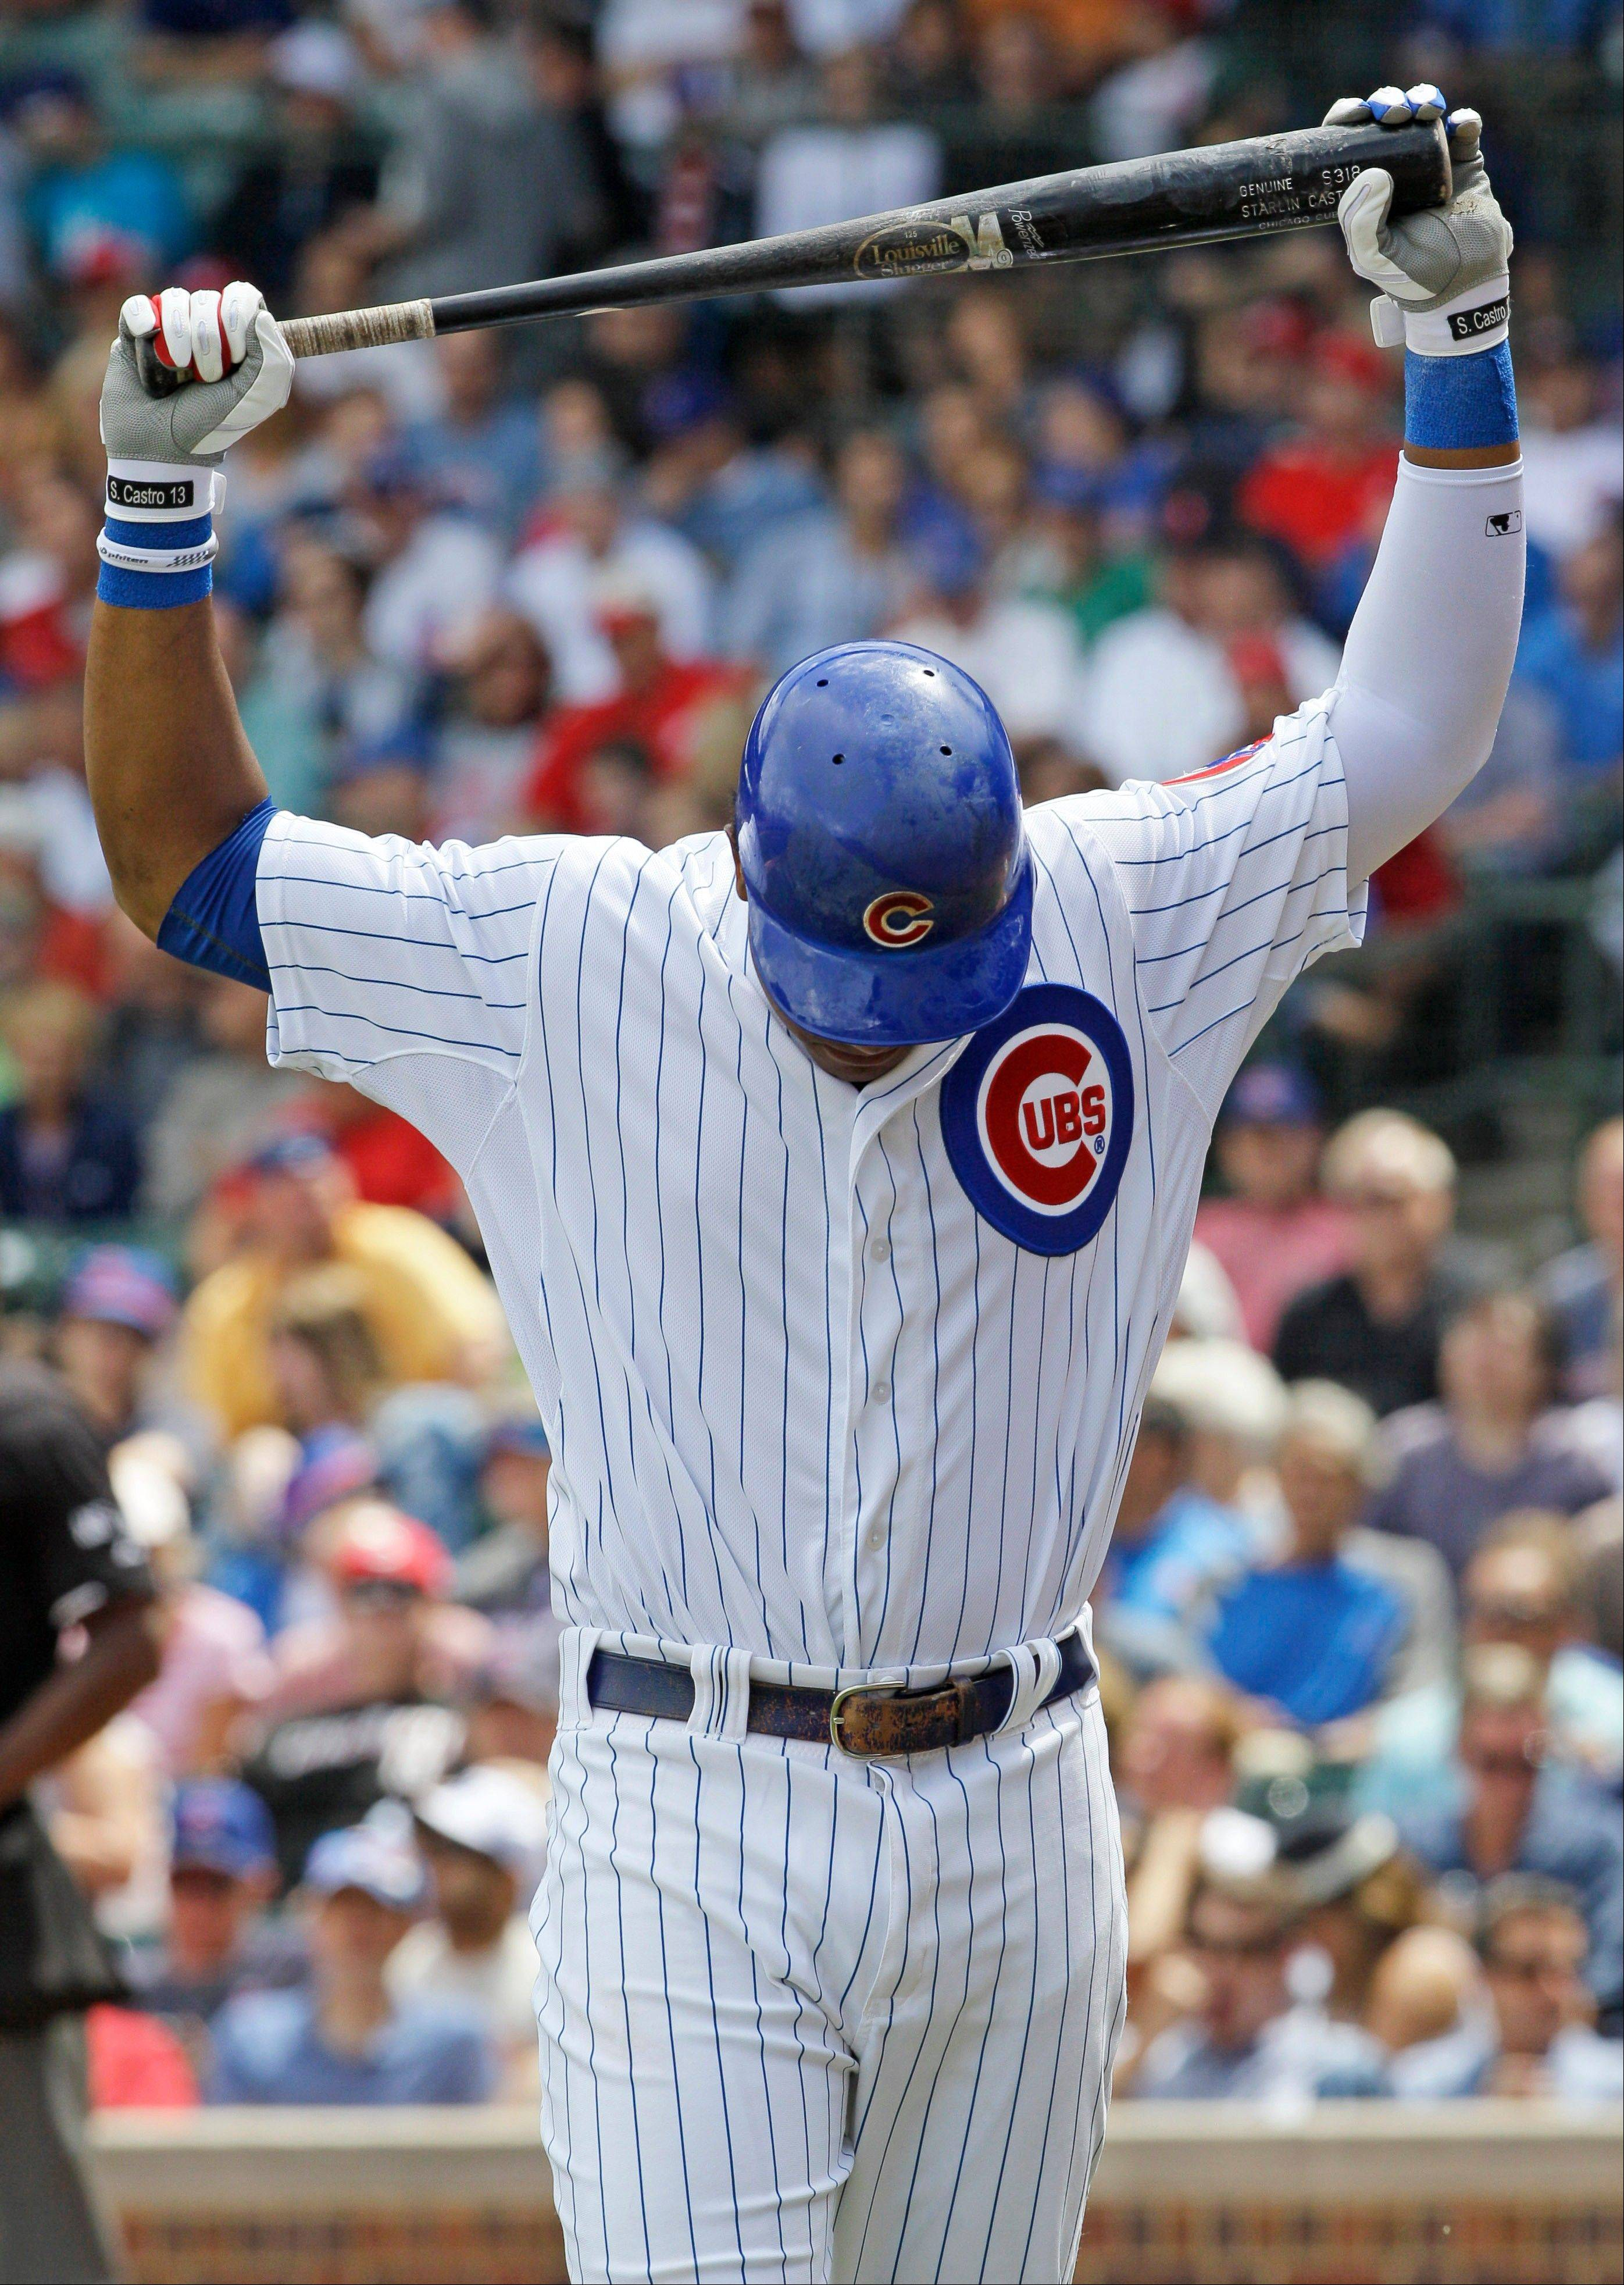 Cubs shortstop Starlin Castro reacts after being called out on strikes Friday during the first inning against the Cincinnati Reds at Wrigley Field.